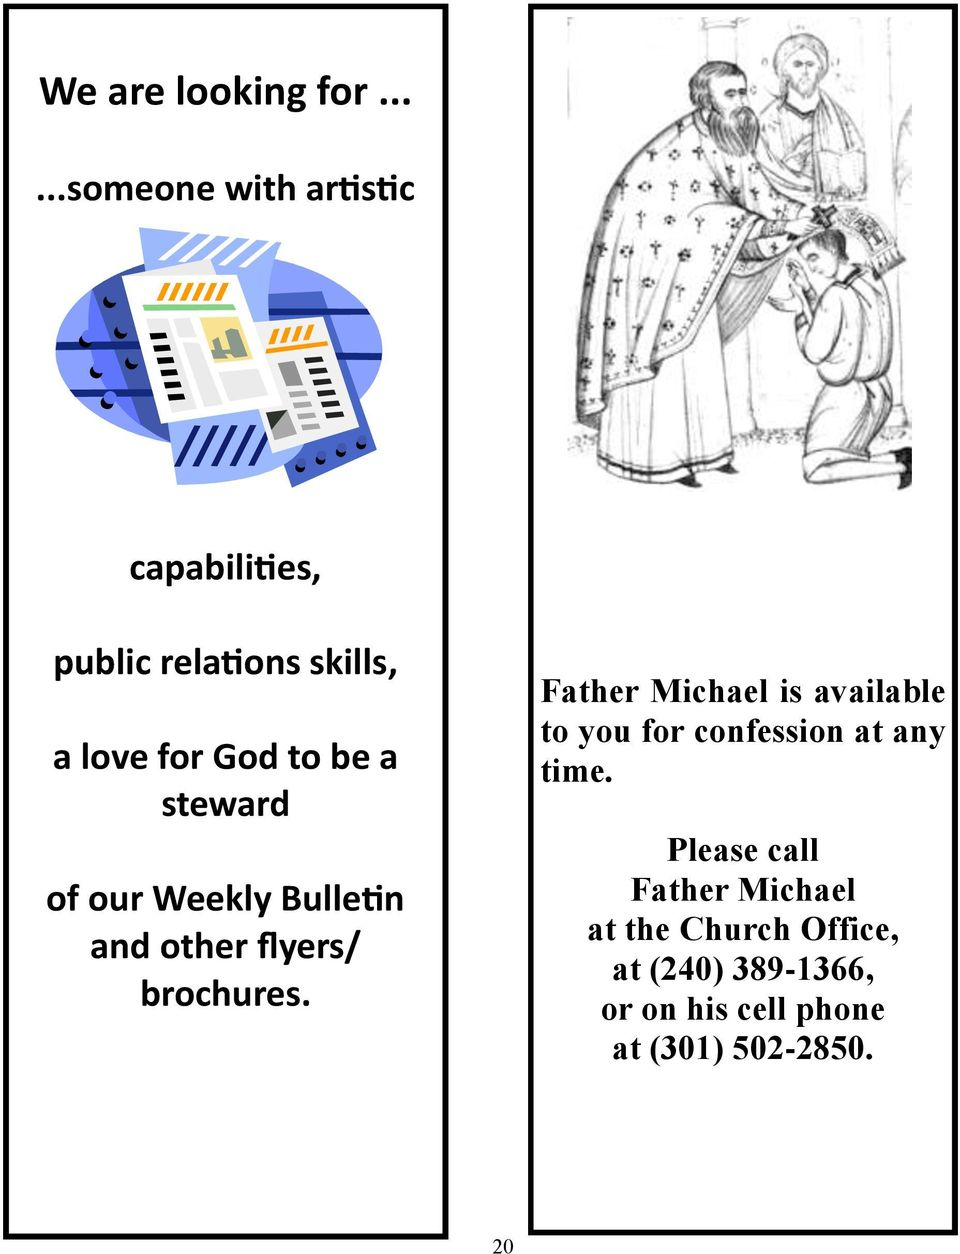 be a steward of our Weekly Bulletin and other flyers/ brochures.